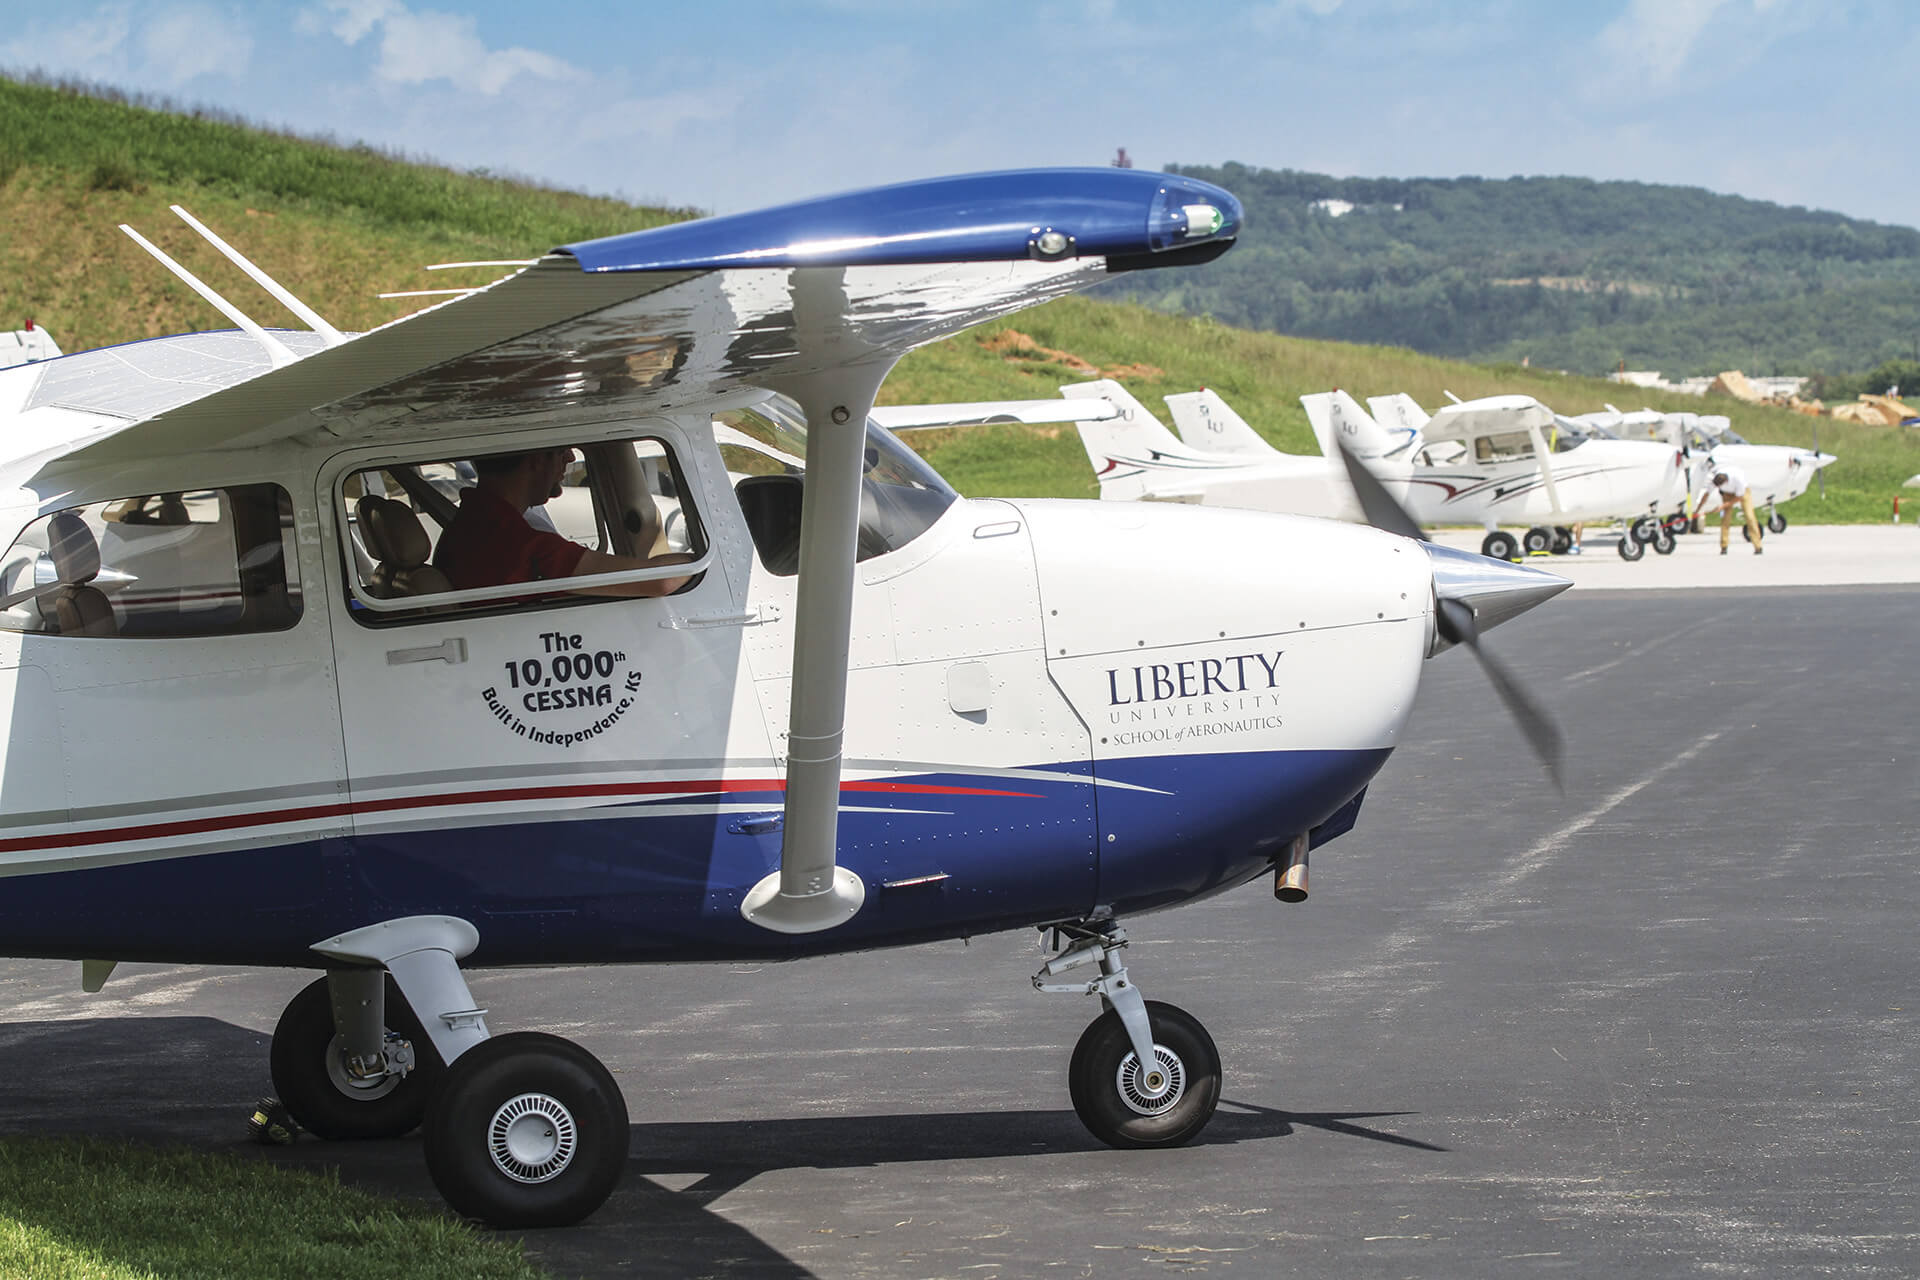 Choosing a flight training program